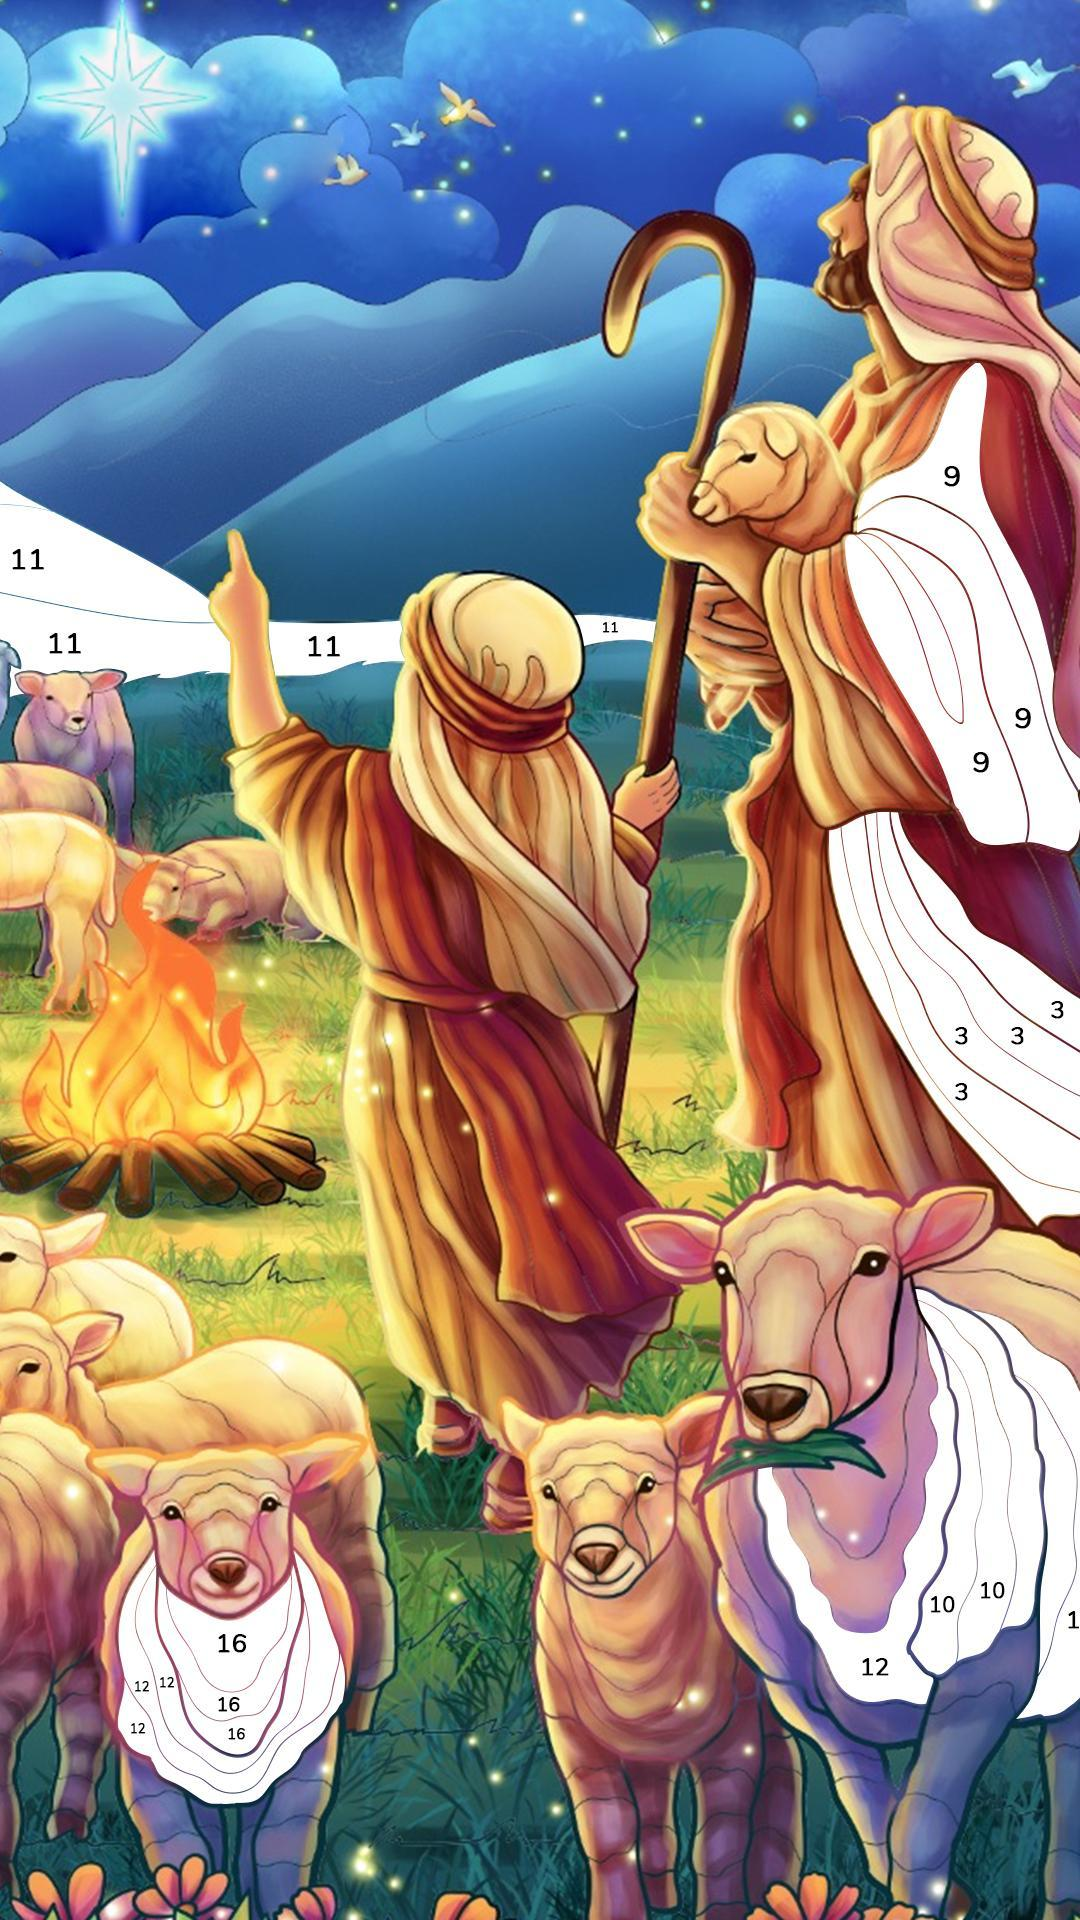 Bible Coloring Paint by Number, Free Bible Games 2.1.14 Screenshot 4